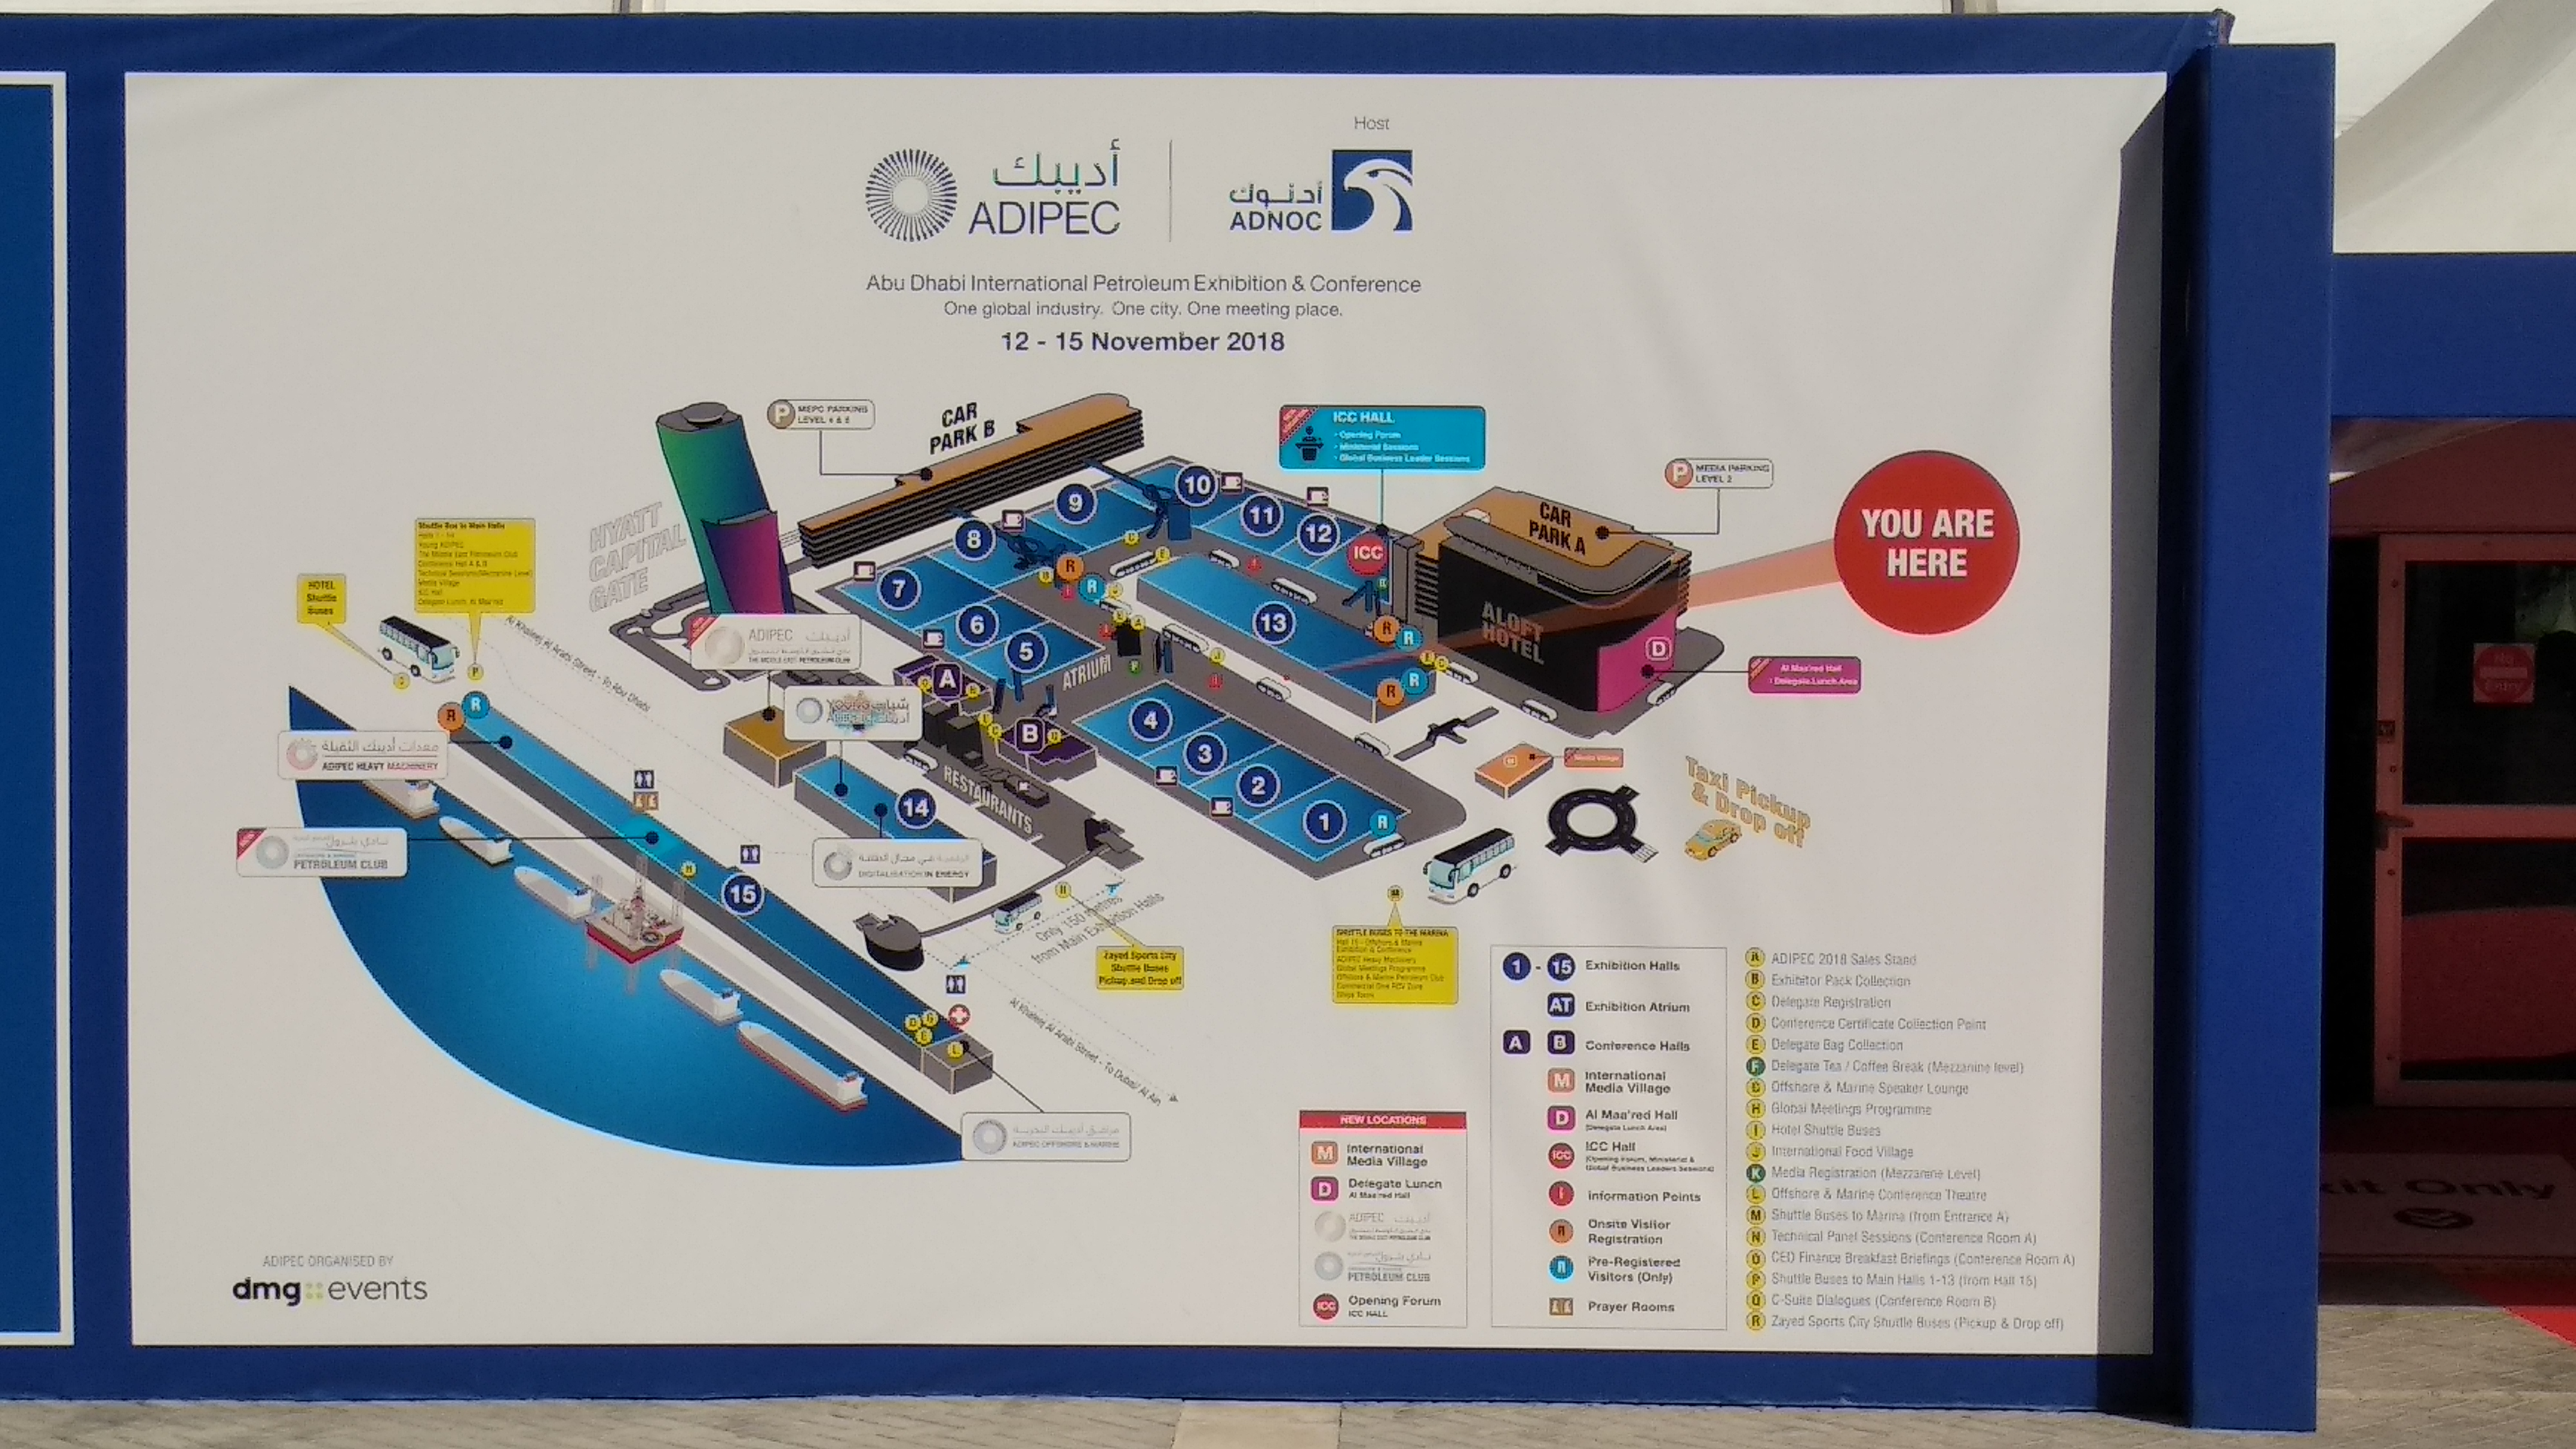 ADIPEC 2018 is over : TM Tecnomatic